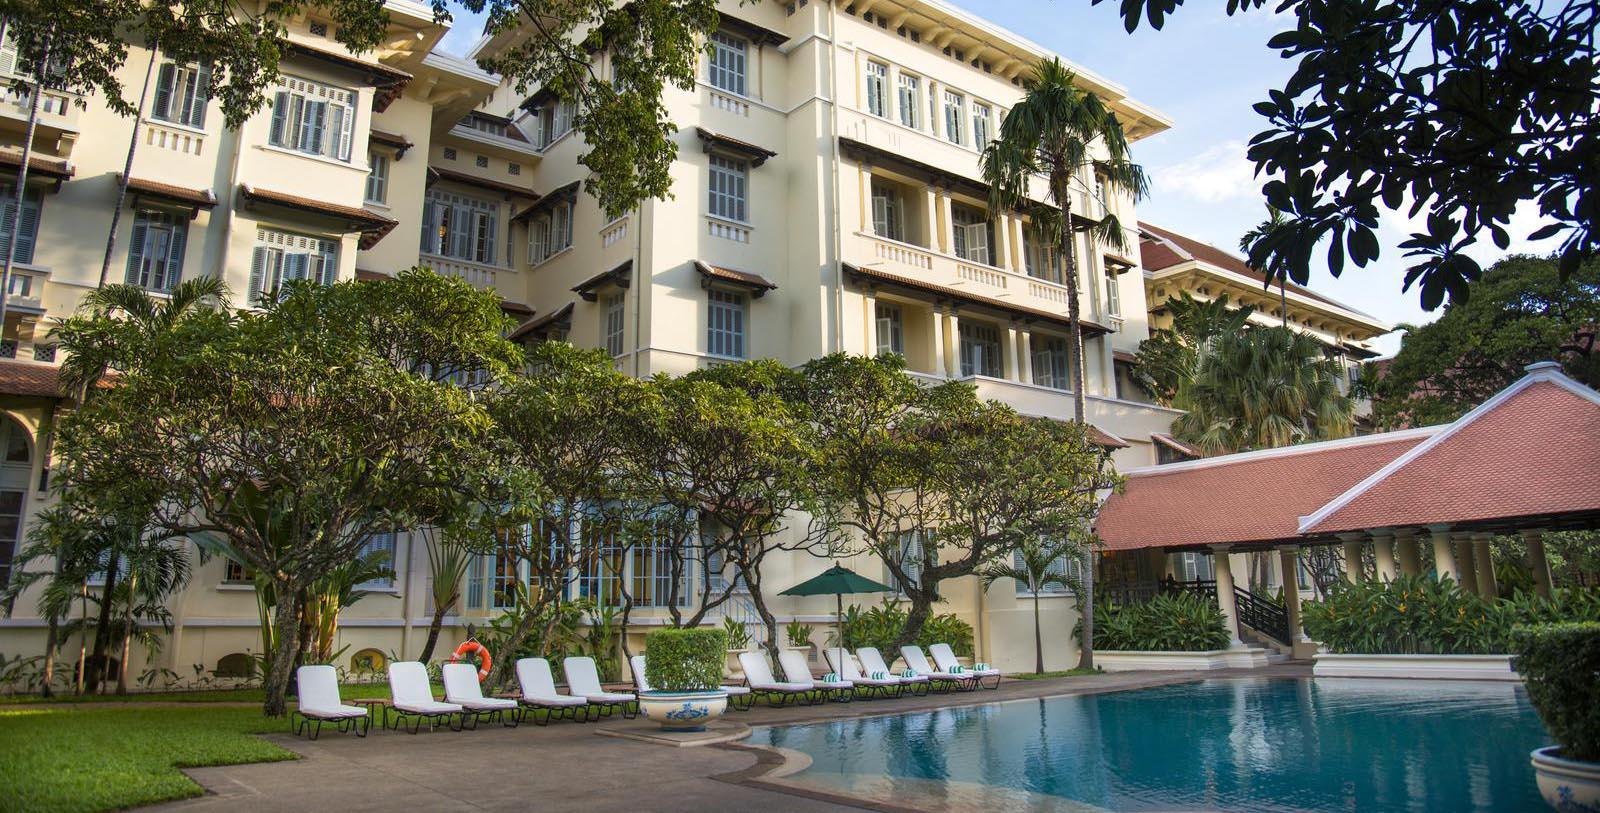 Image of Pool Raffles Hotel Le Royal, 1929, Member of Historic Hotels Worldwide, in Phnom Penh, Cambodia, Spa